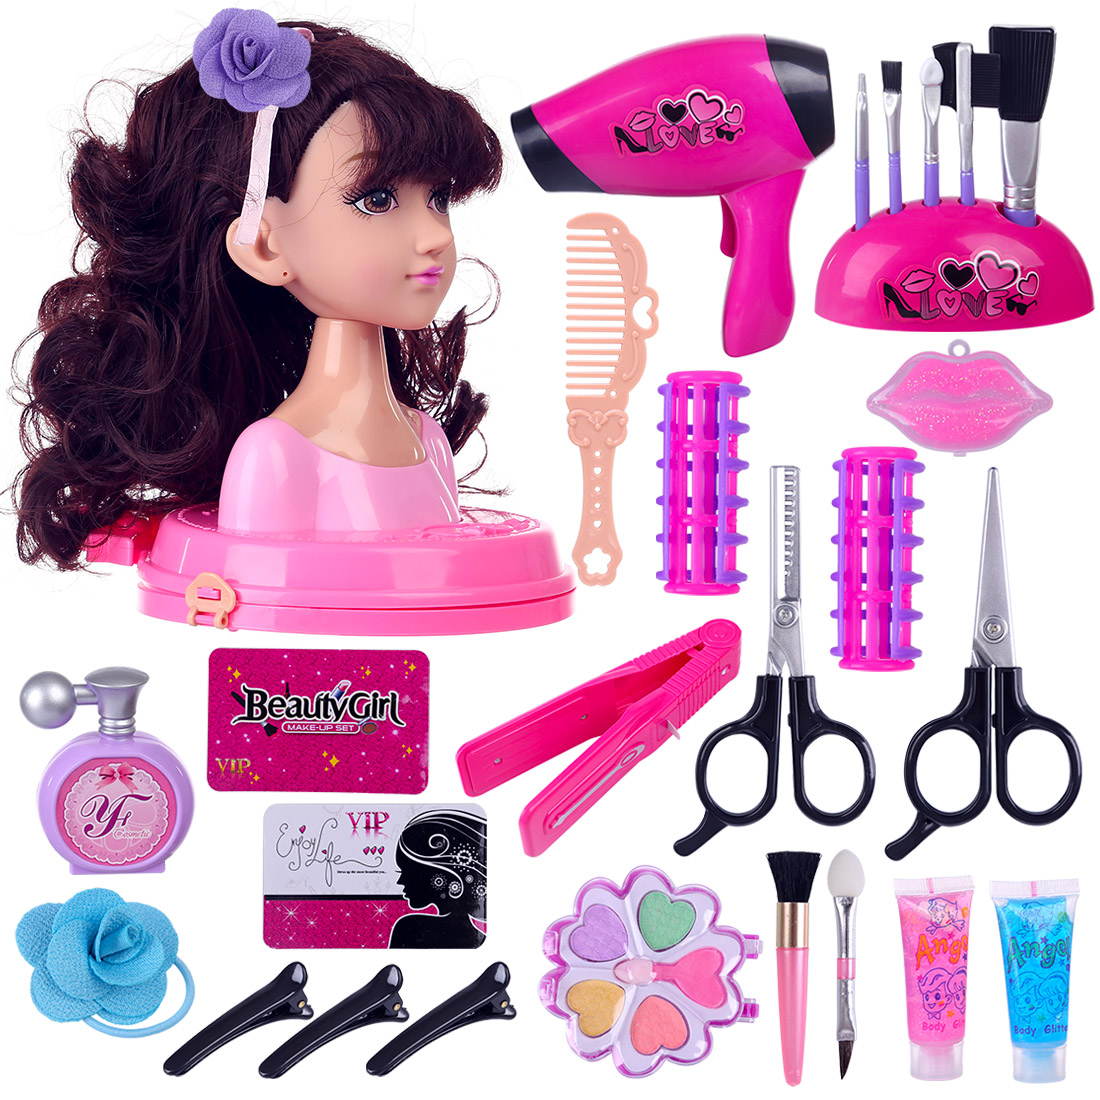 New Children Pretend Playset Doll Deluxe Styling Head Makeup Hairstyle Beauty Toy Gift For Girls Birthday